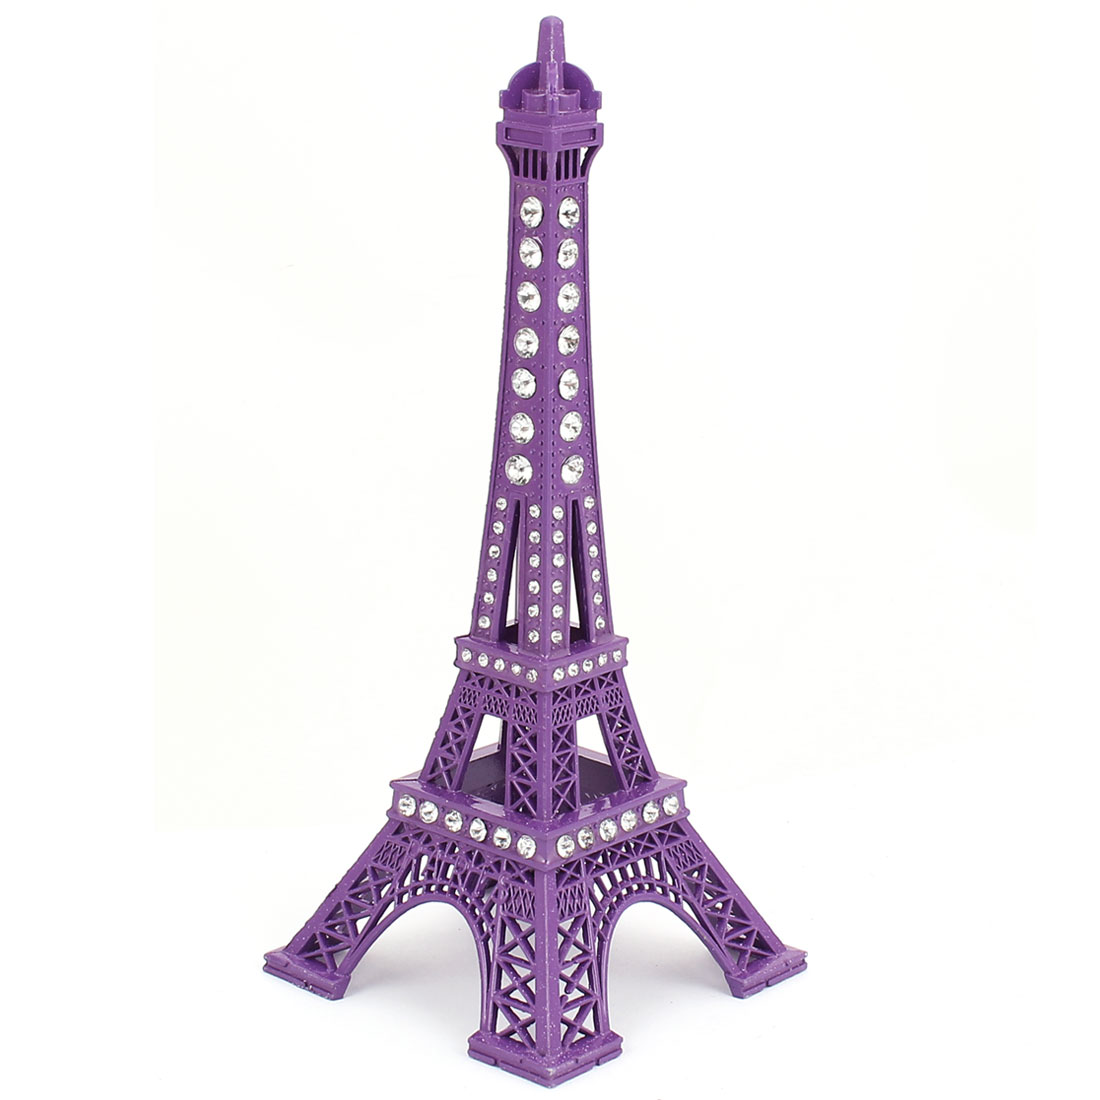 Rhinestone Detail Mini France Paris Eiffel Tower Sculpture Statue 3D Model Ornament 18cm Height Purple